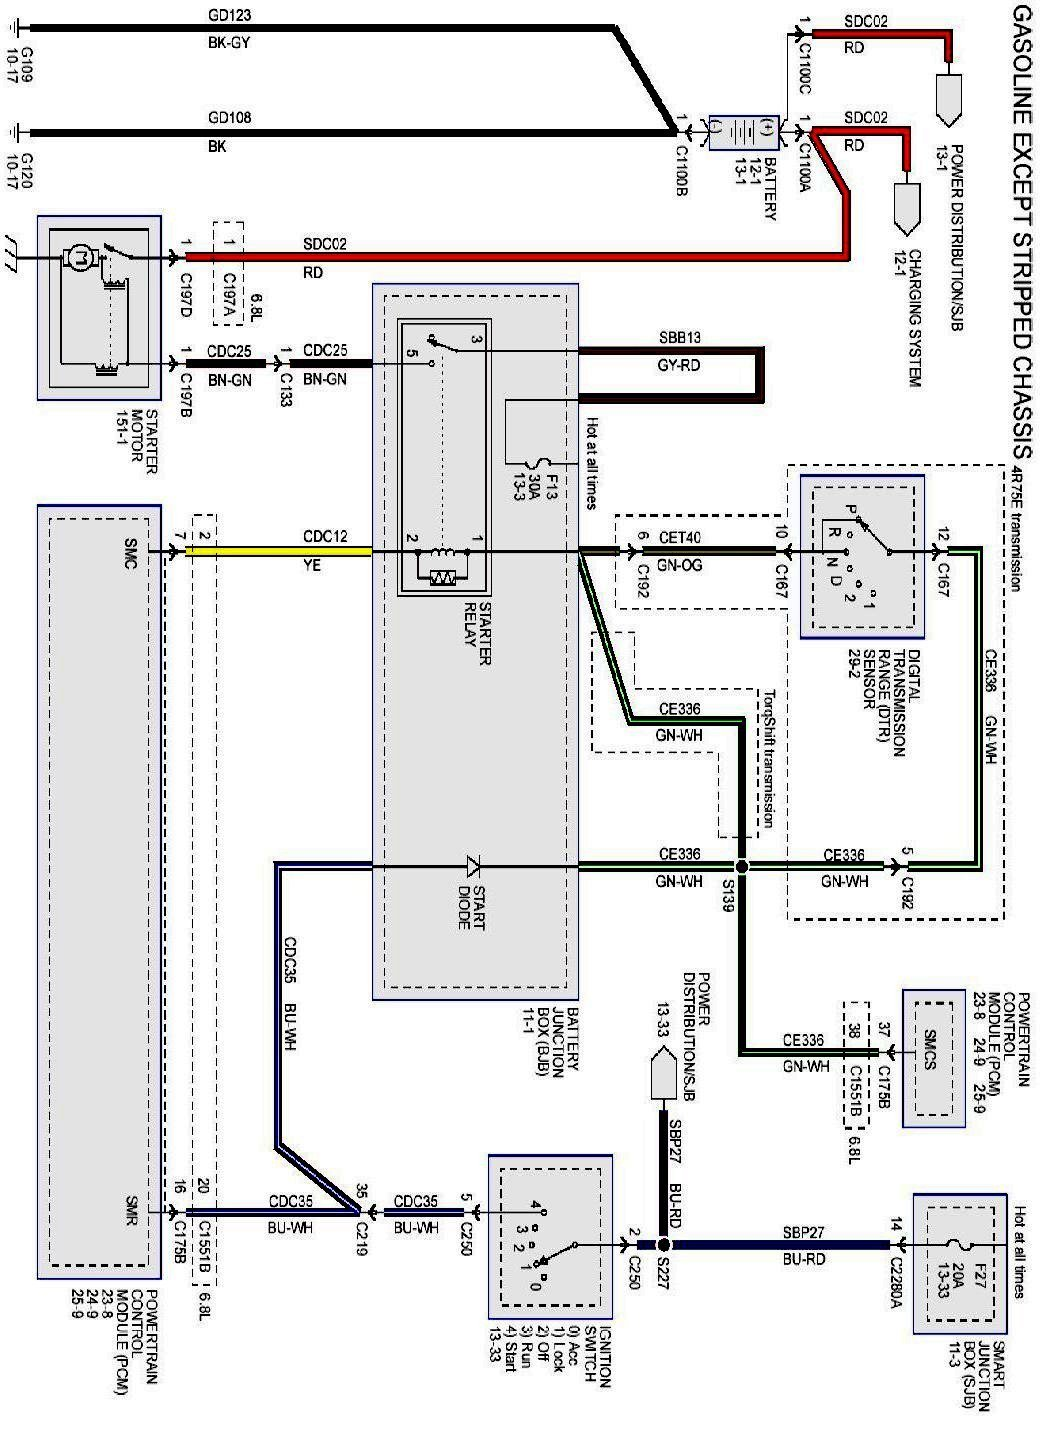 Where Can I Get A Wiring Diagram For A 2010 E